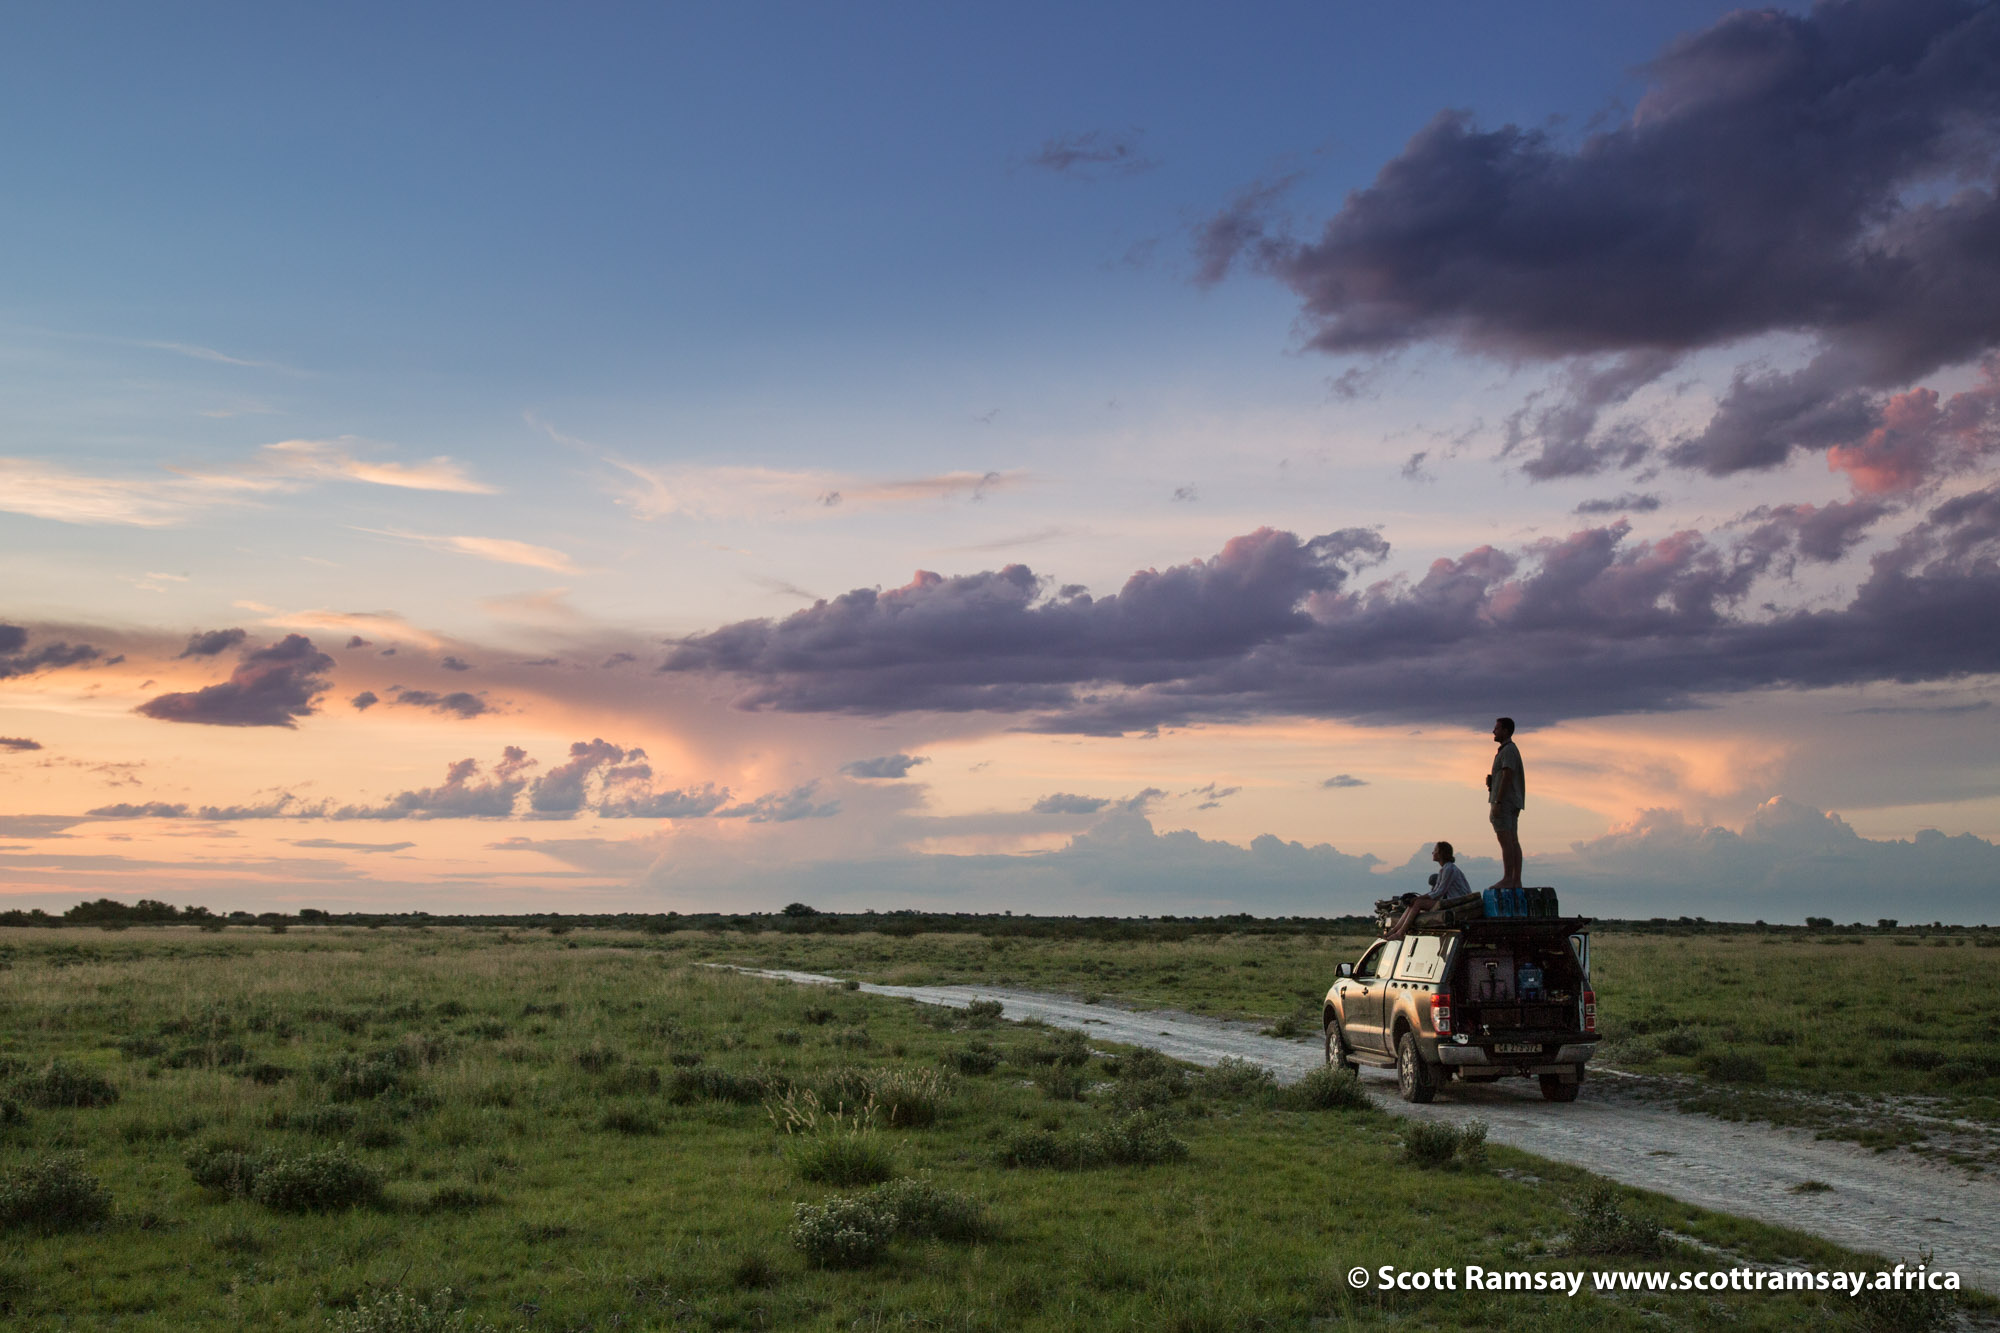 The feeling of freedom...once you've tasted it in the Central Kalahari, you won't go back to more popular parks where mass tourism has ruined the essence of a wilderness experience. My friends Ian and Joni enjoying a sundowner on top of my Ford Ranger near Letiahu Pan.